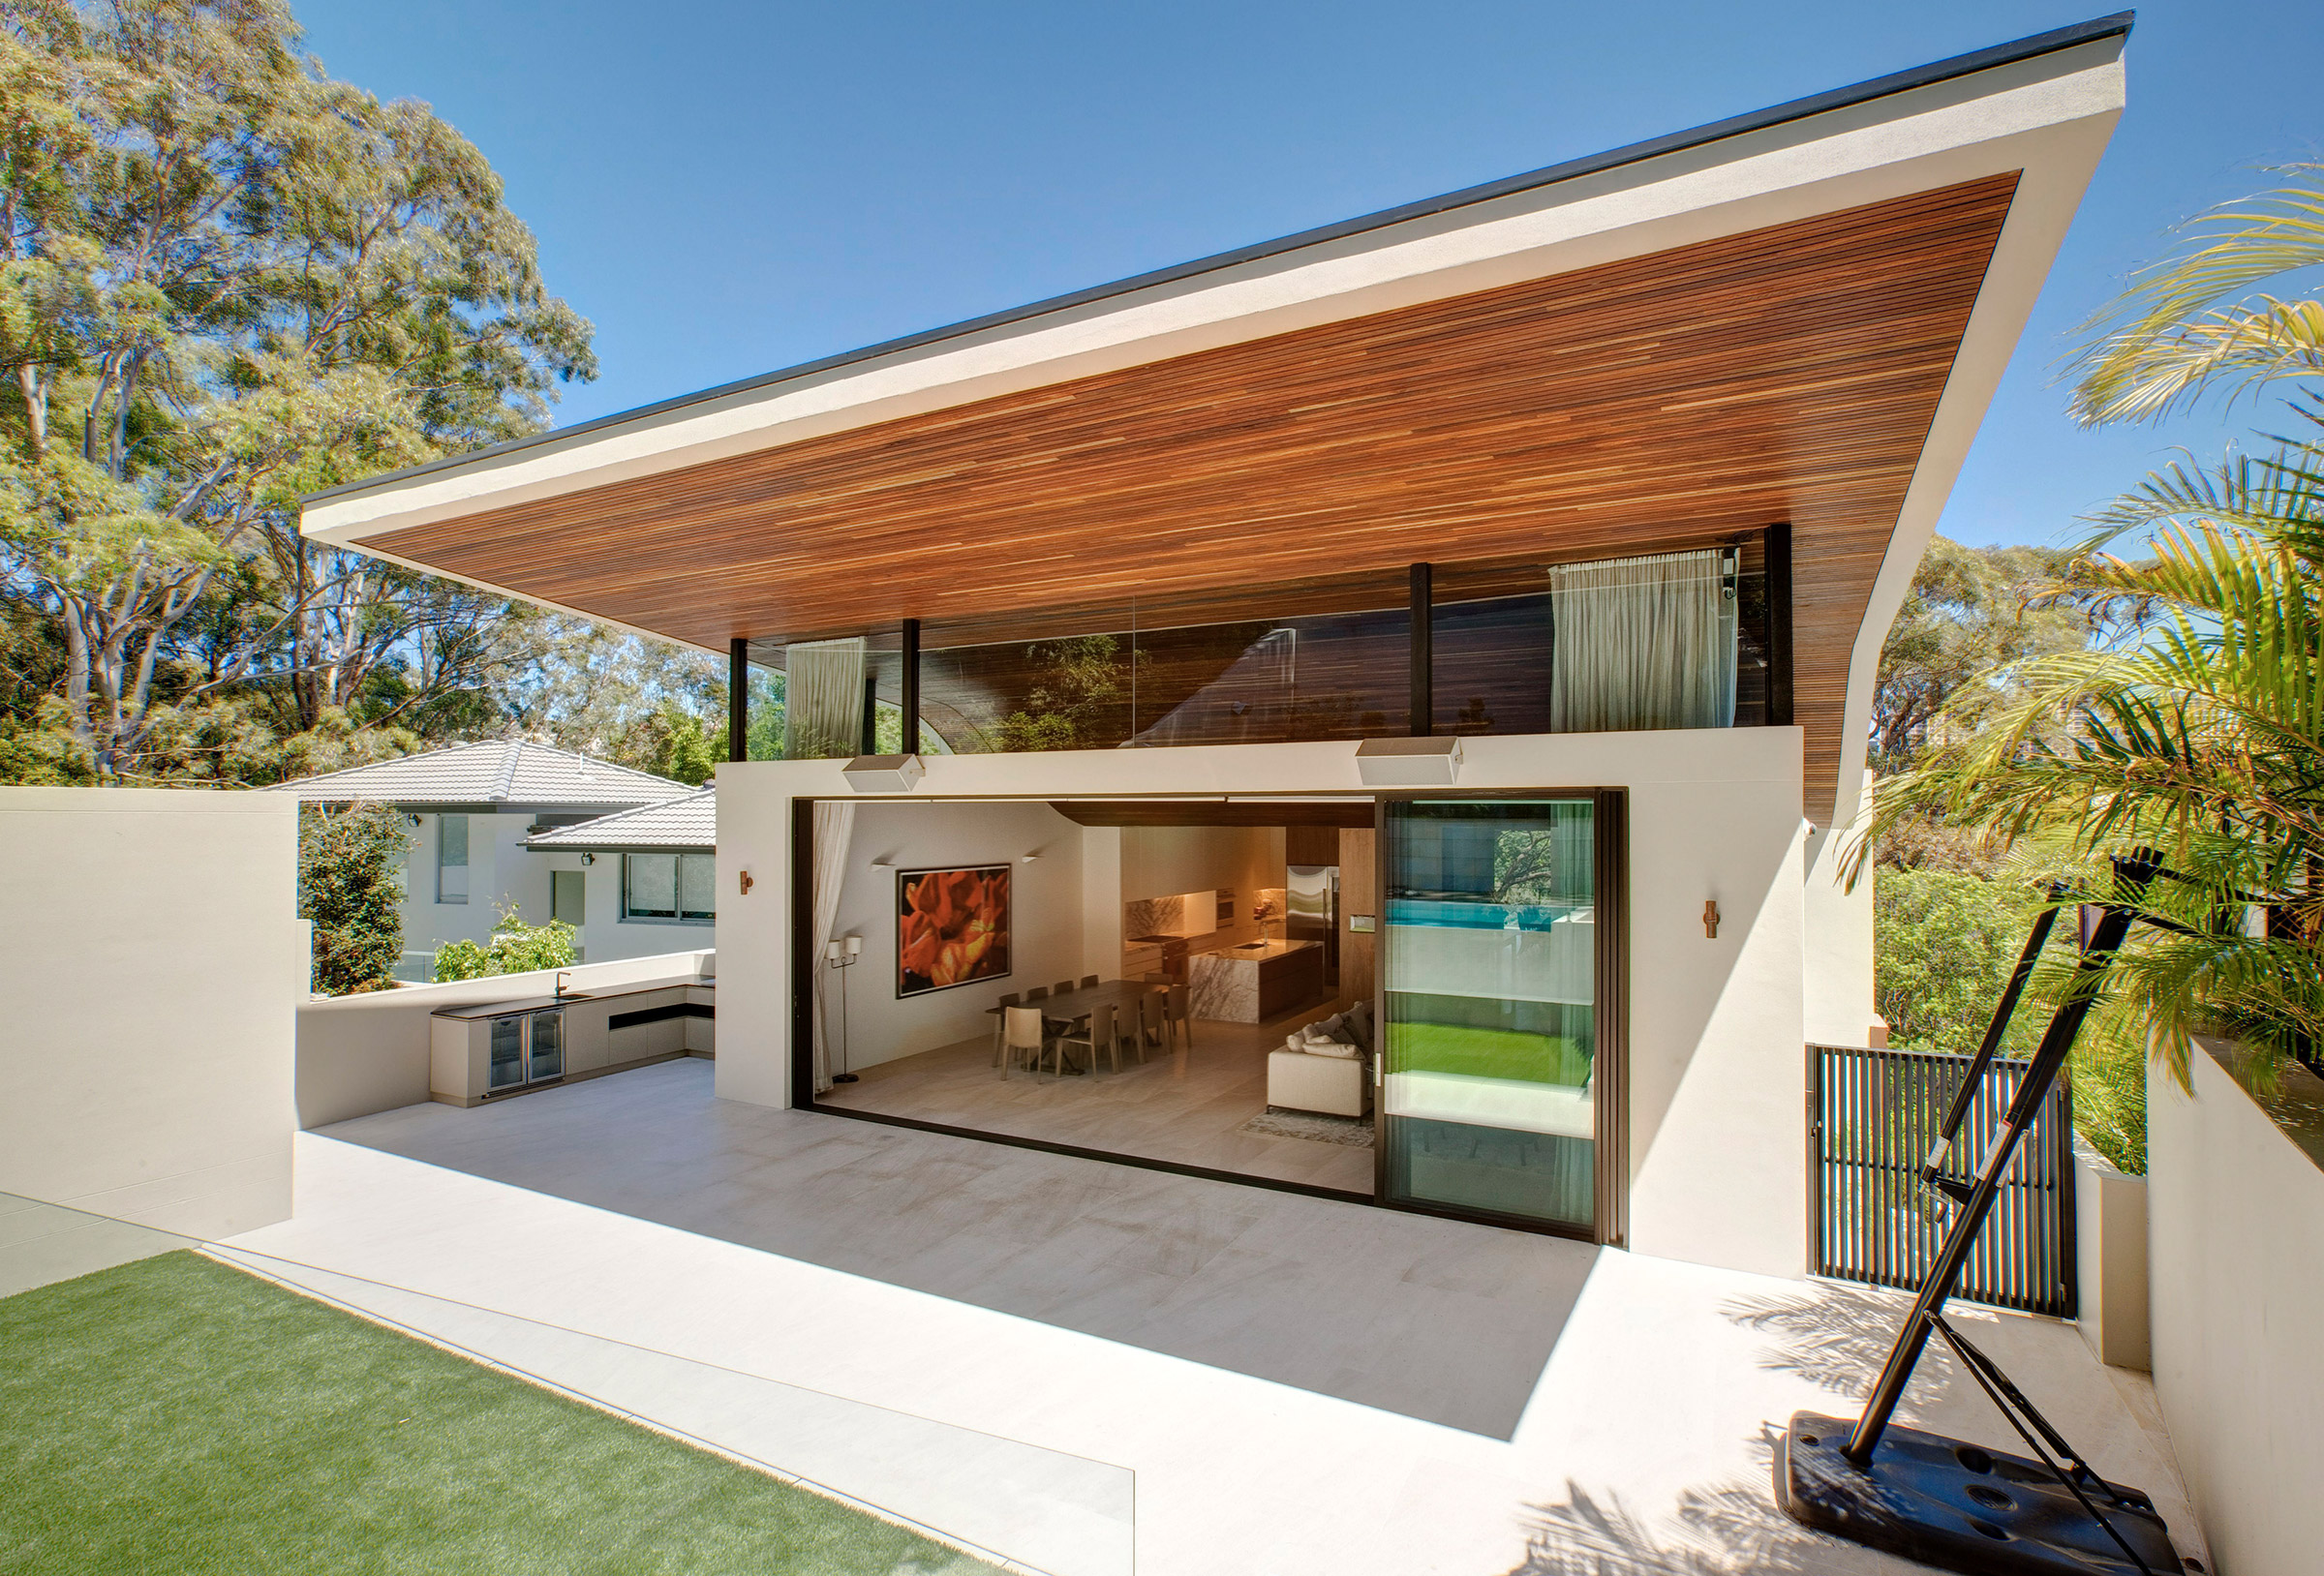 Sculptform - Bellevue Hill House